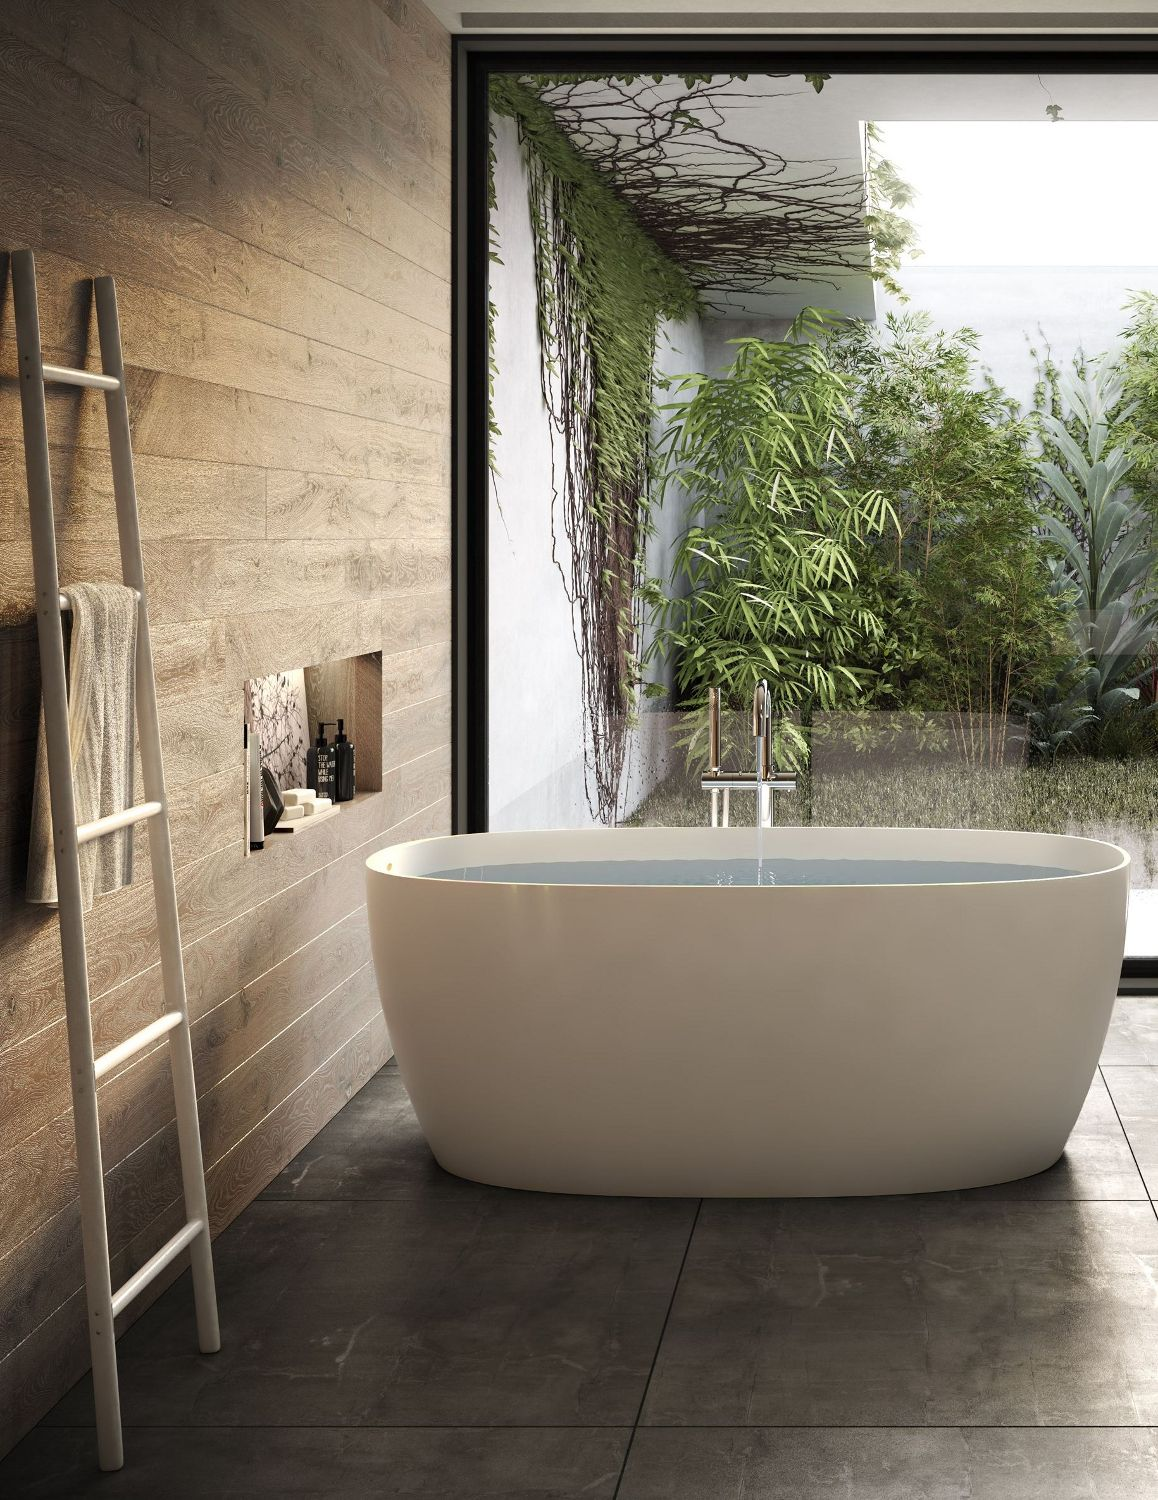 ATTITUDE Freestanding composite material #bathtub by Jacuzzi Europe